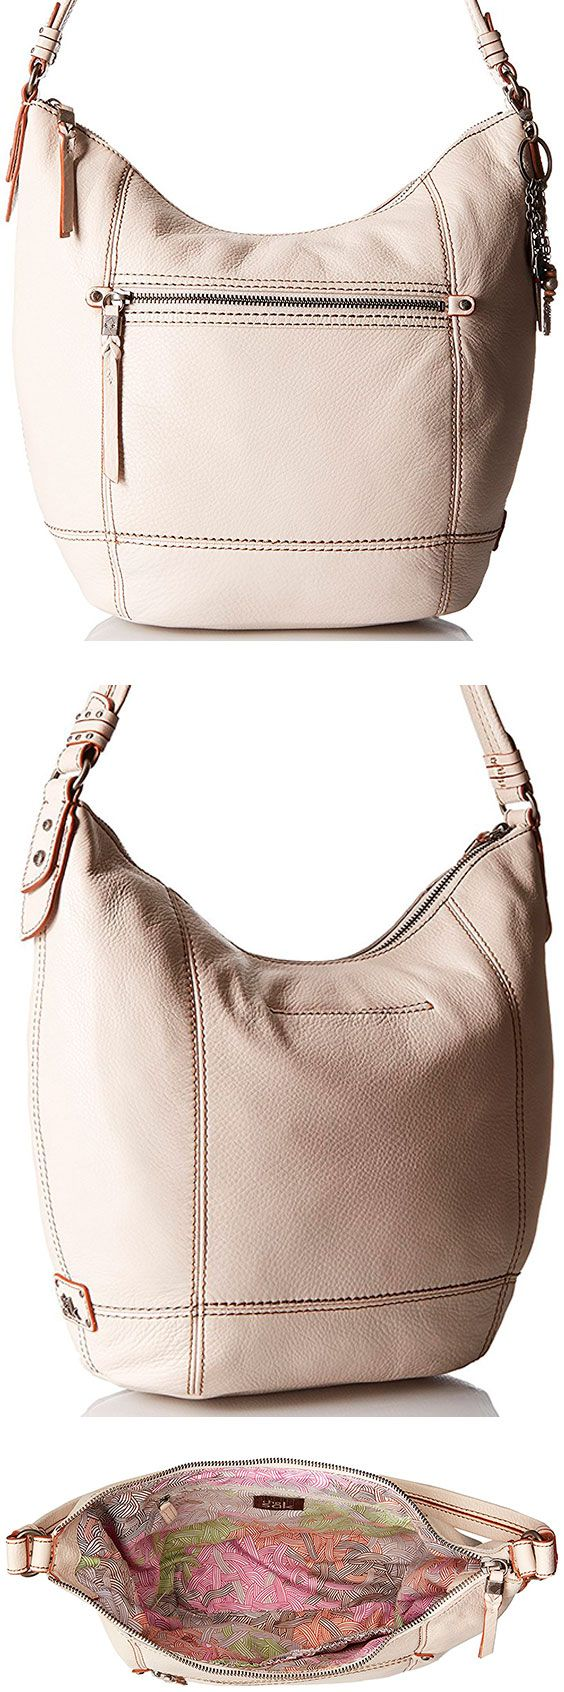 The Sak Sequoia Hobo Bag – Best Large Leather Hobo Shoulder Bag The Sequoia lives up to its namesake and comes in at a relatively large, inexpensive shoulder bag. With 11 styles to choose from, the right person will love the oversized design. #TheSAK #Leather #Baguette #Handbag #Hobo #ShoulderBag #Bag #White #Biege